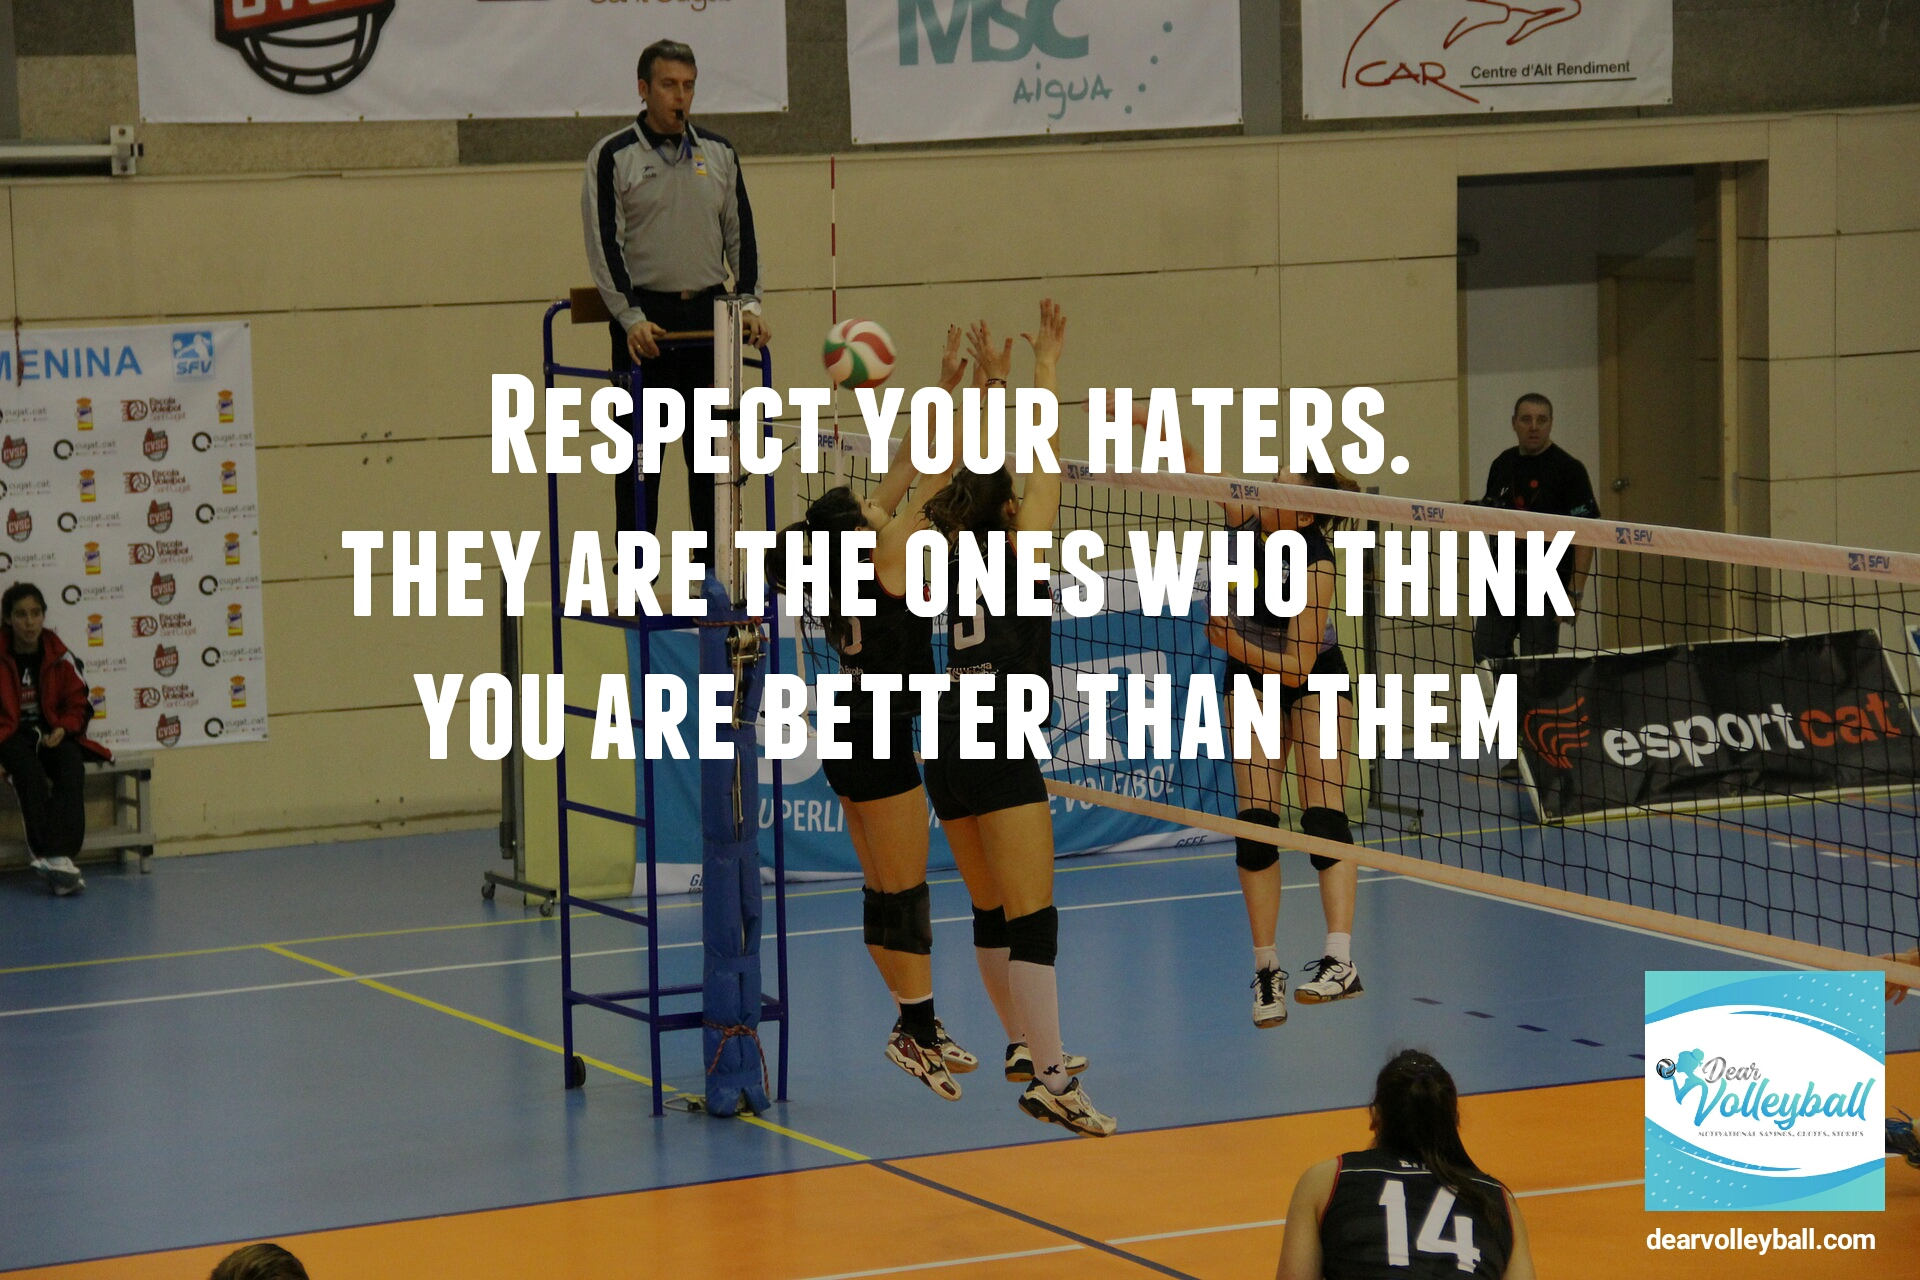 Respect your haters. They are the ones who think you are better than them.